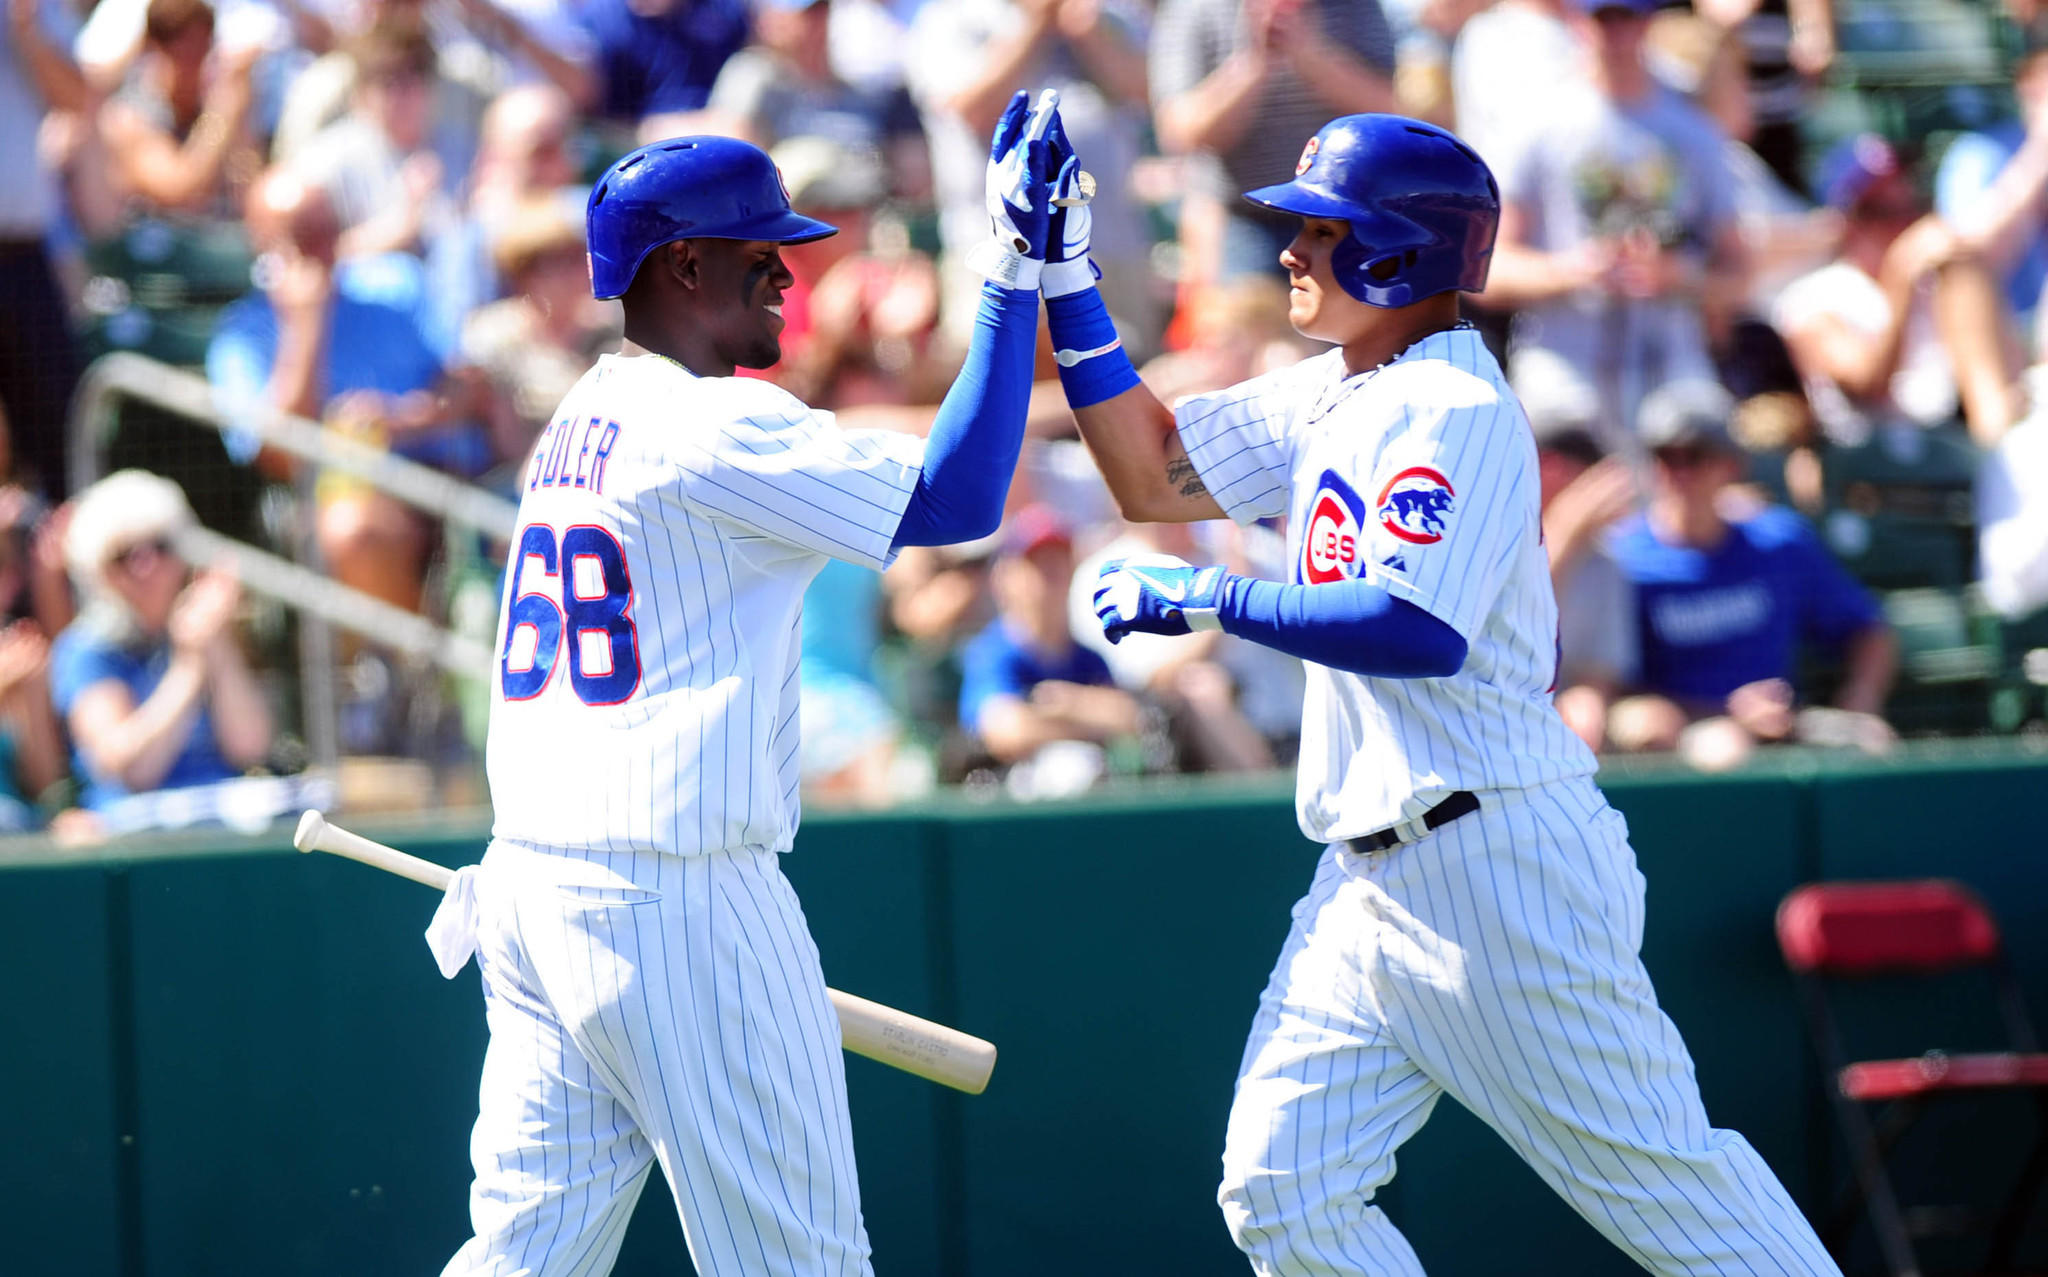 Chicago Cubs Javier Baez (right) and Jorge Soler during a spring training game in March.